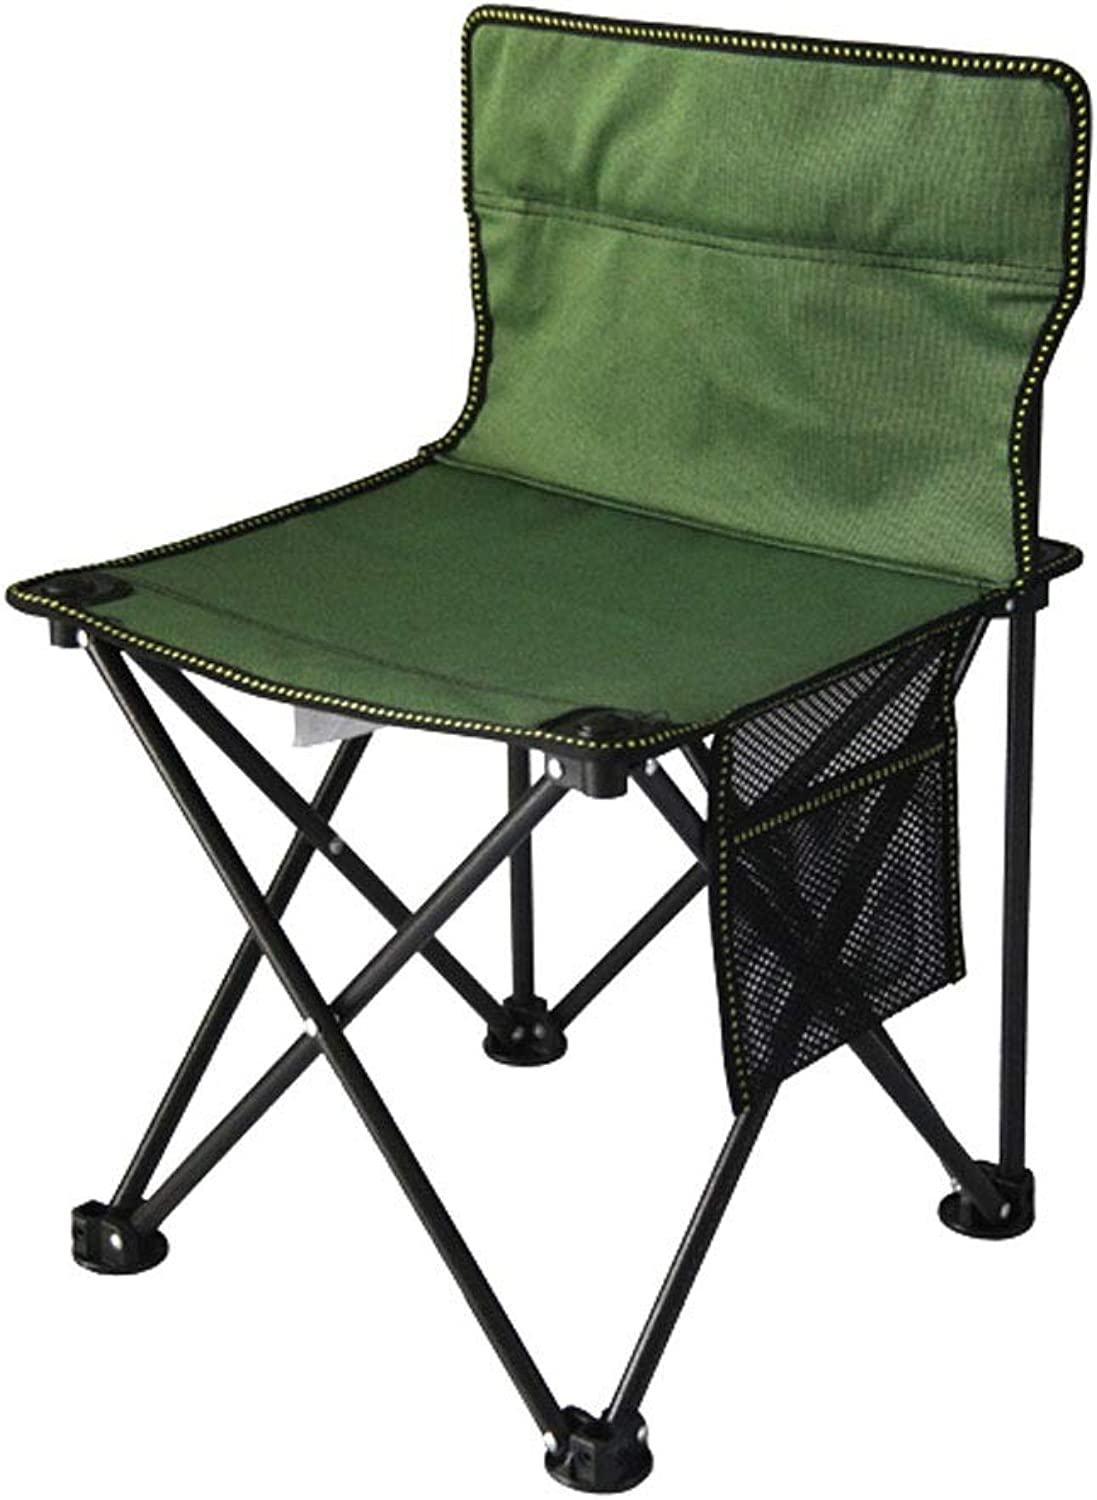 ZA Folding Chair, Ultra-Light Metal Frame, Double Oxford Fabric, Easy to Carry, Multi-Functional Chair, Four-Corner Reinforcement, Non-Slip, Durable and Durable, 4 colors, 3